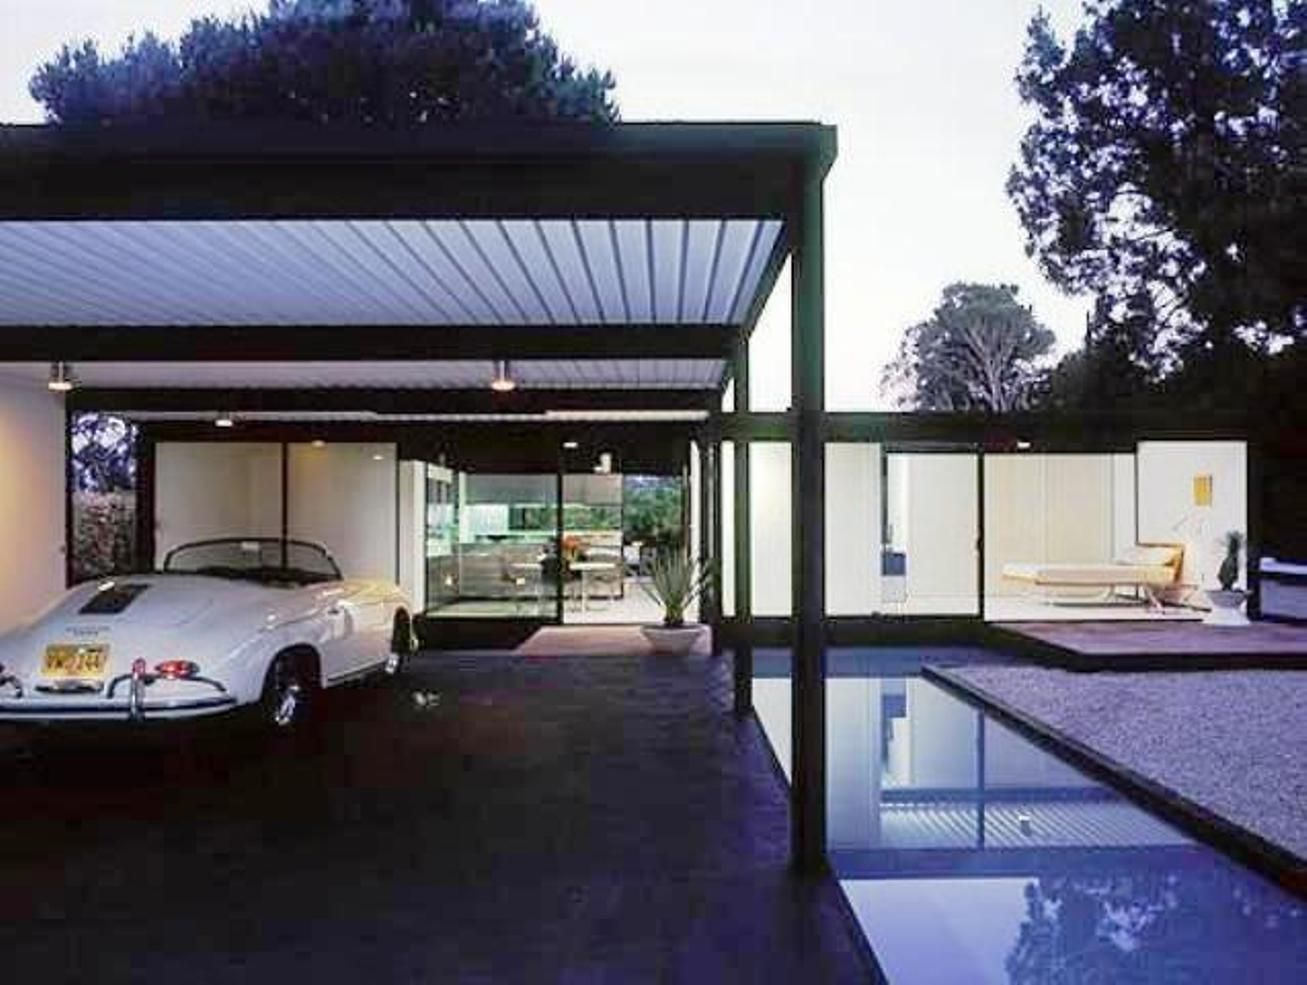 Bailey House Case Study House 21 Los Angeles Pierre